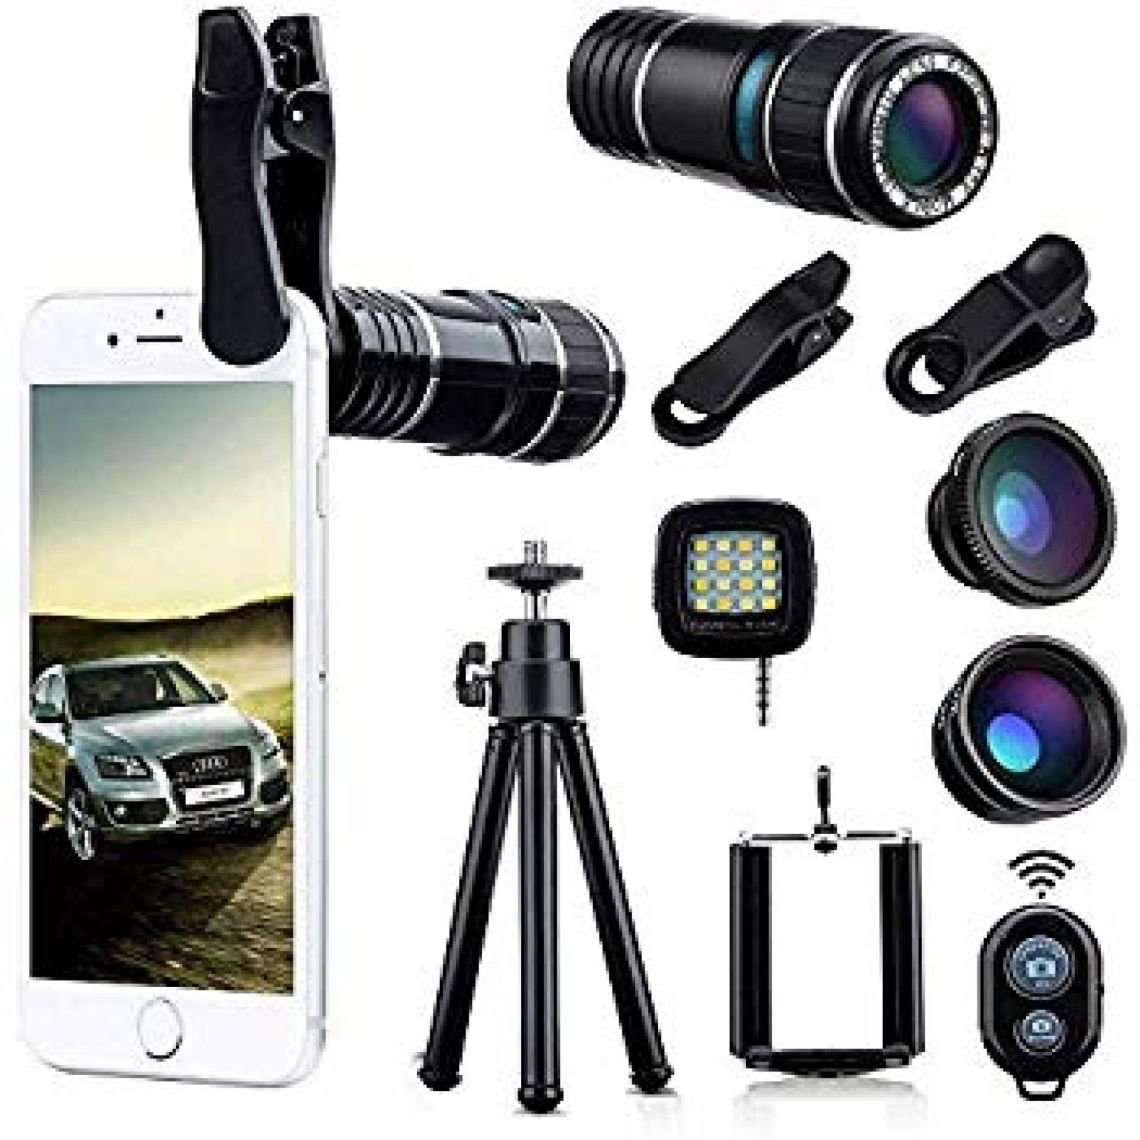 Amazon.com: Wonyered 4-in-1 Cell Phone Camera Lens 12X Telephoto Lens 180 Degree Fisheye Lens 0.65 Wide Angle Lens Micro Lens with Tripod and Clips for iPhone Samsung Galaxy Android and All Smartphones: Camera & Photo